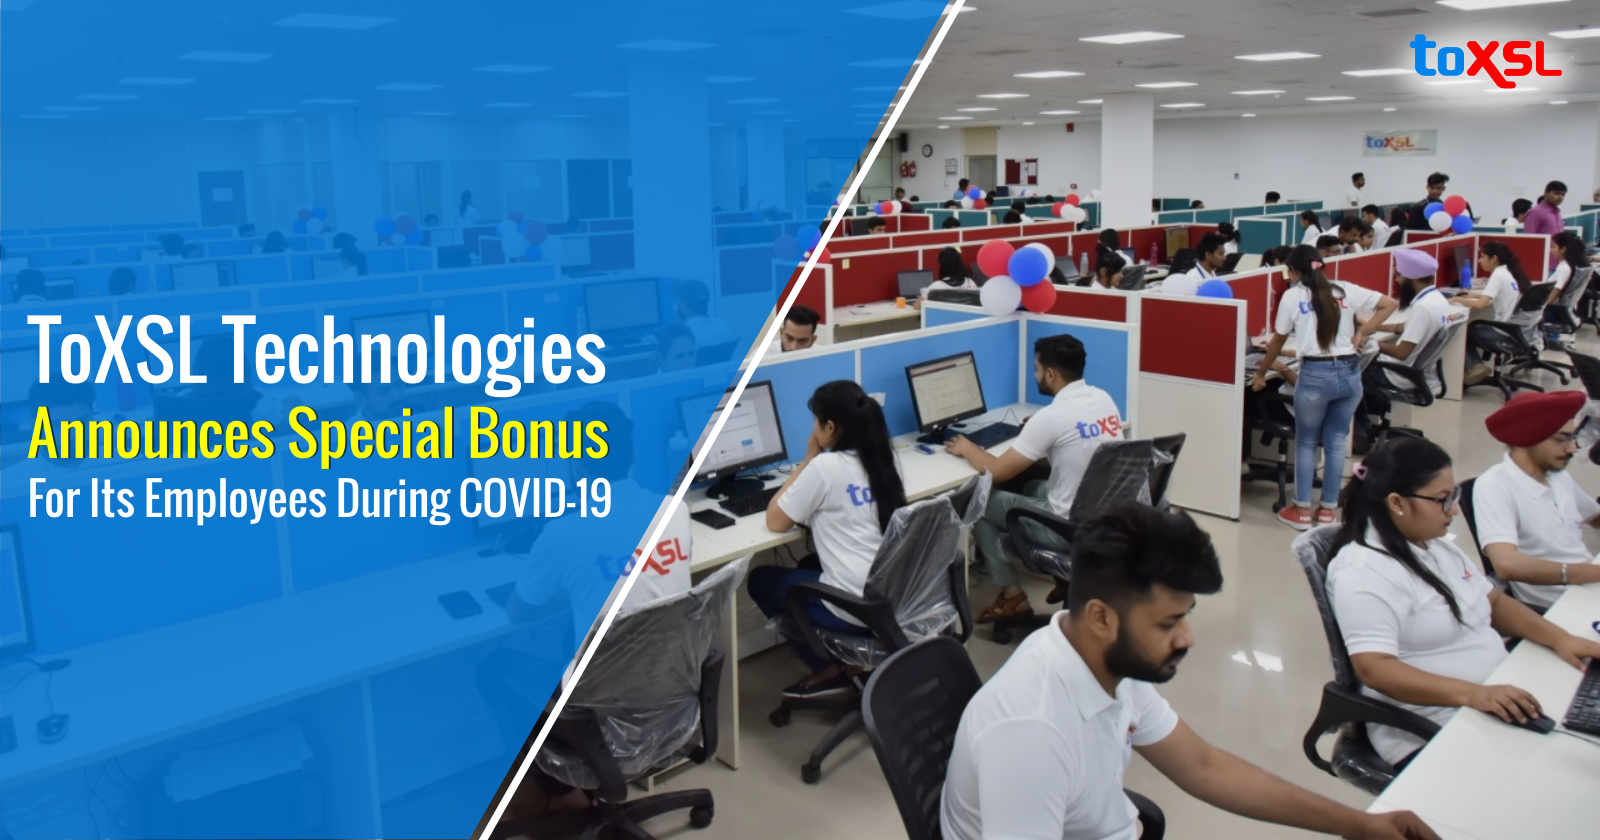 ToXSL Technologies Announces Special Bonus For Its Employees During COVID-19